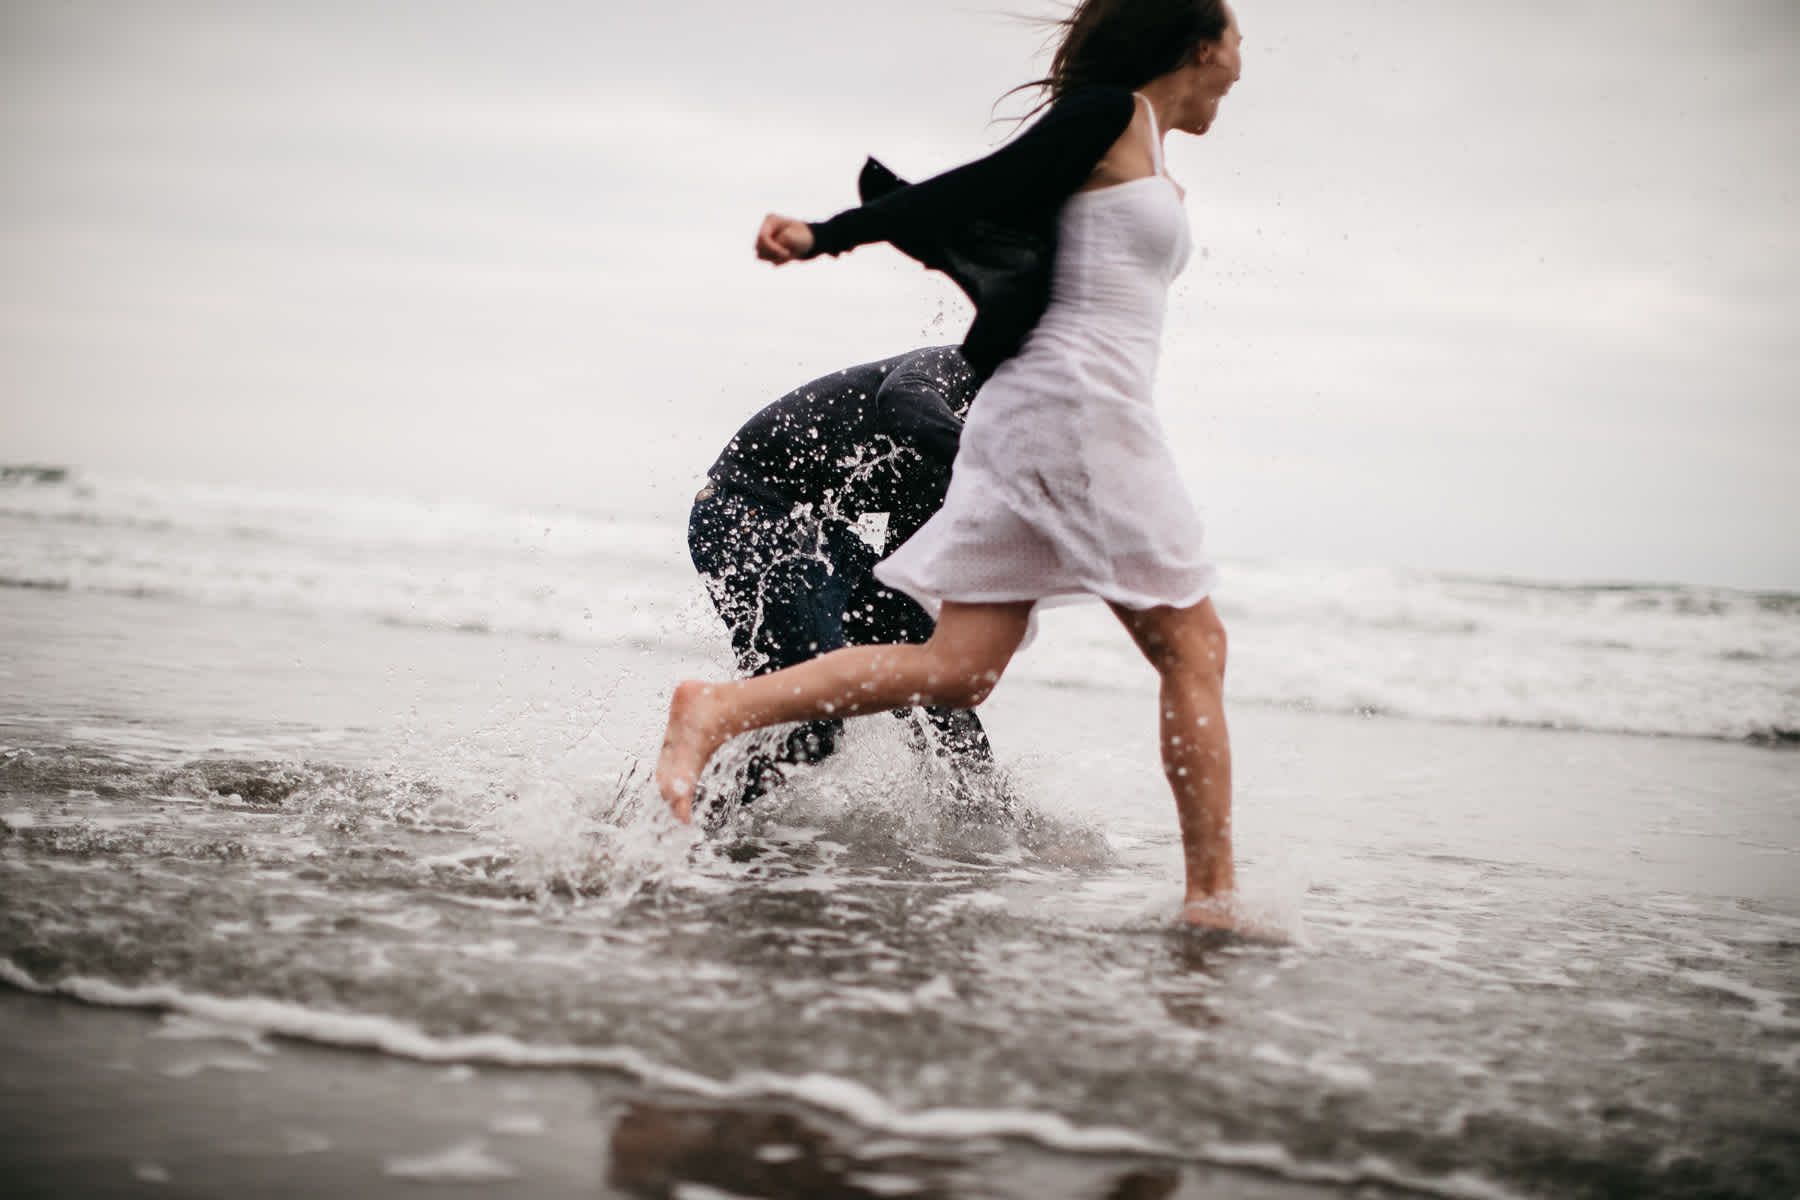 fort-funston-foggy-fun-beach-water-engagement-session-76